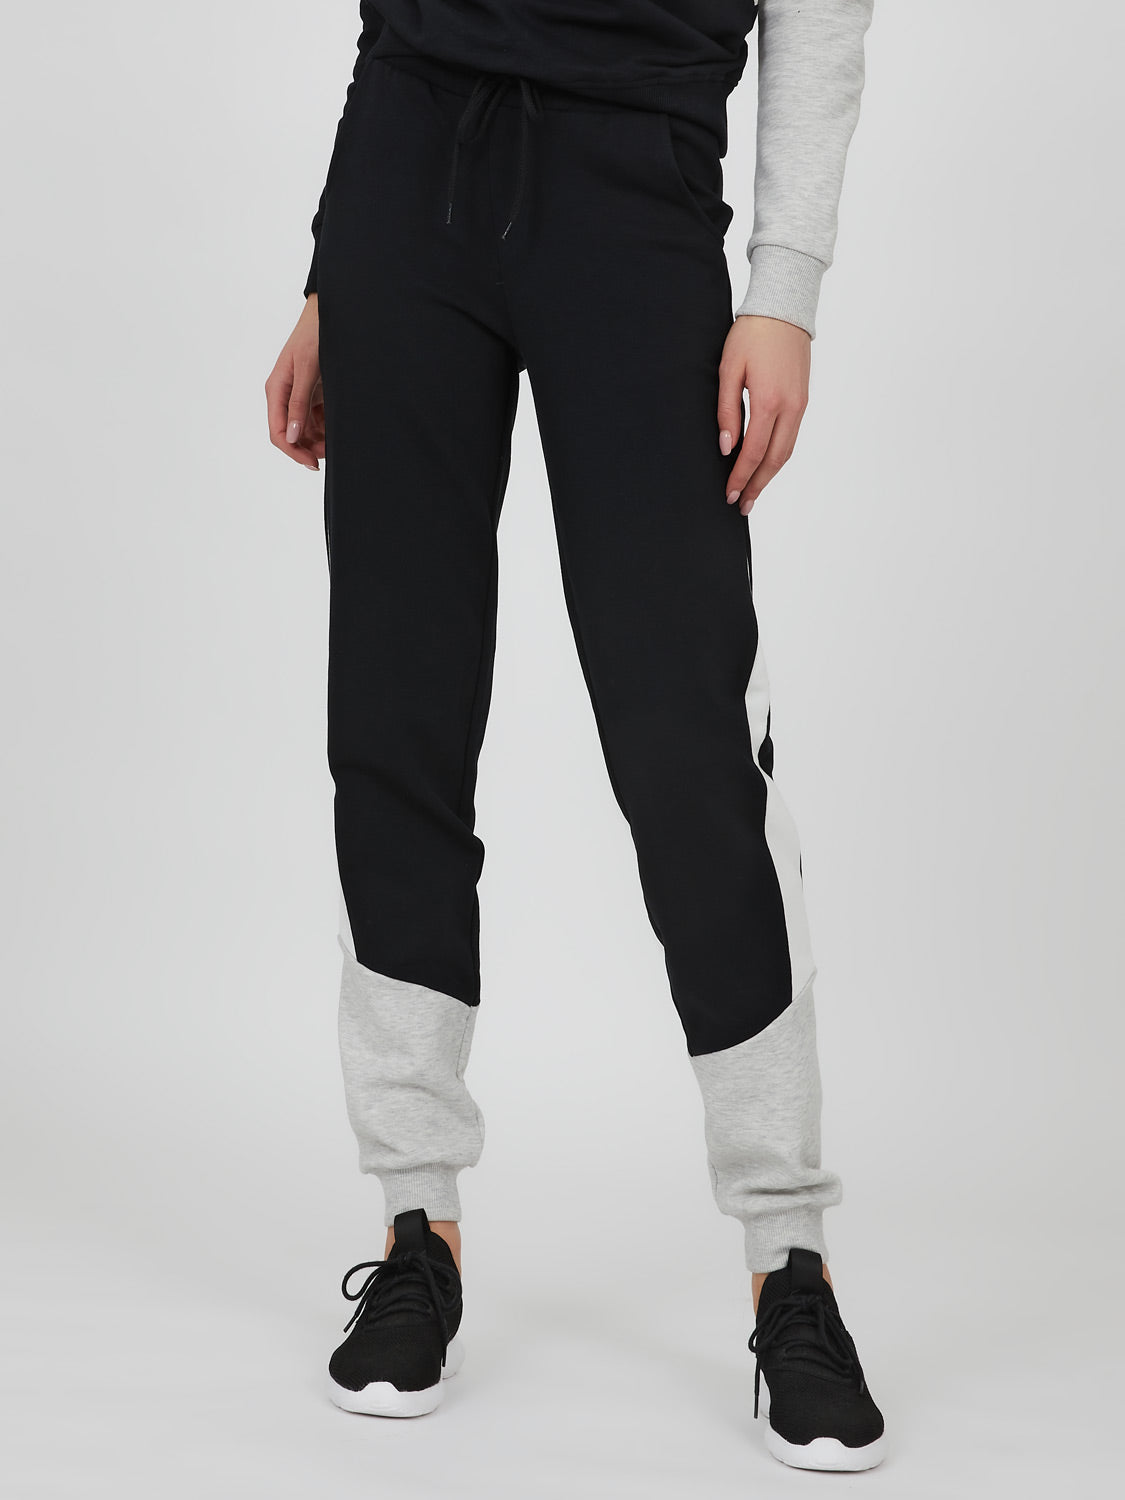 Pantalon en molleton à blocs de couleur